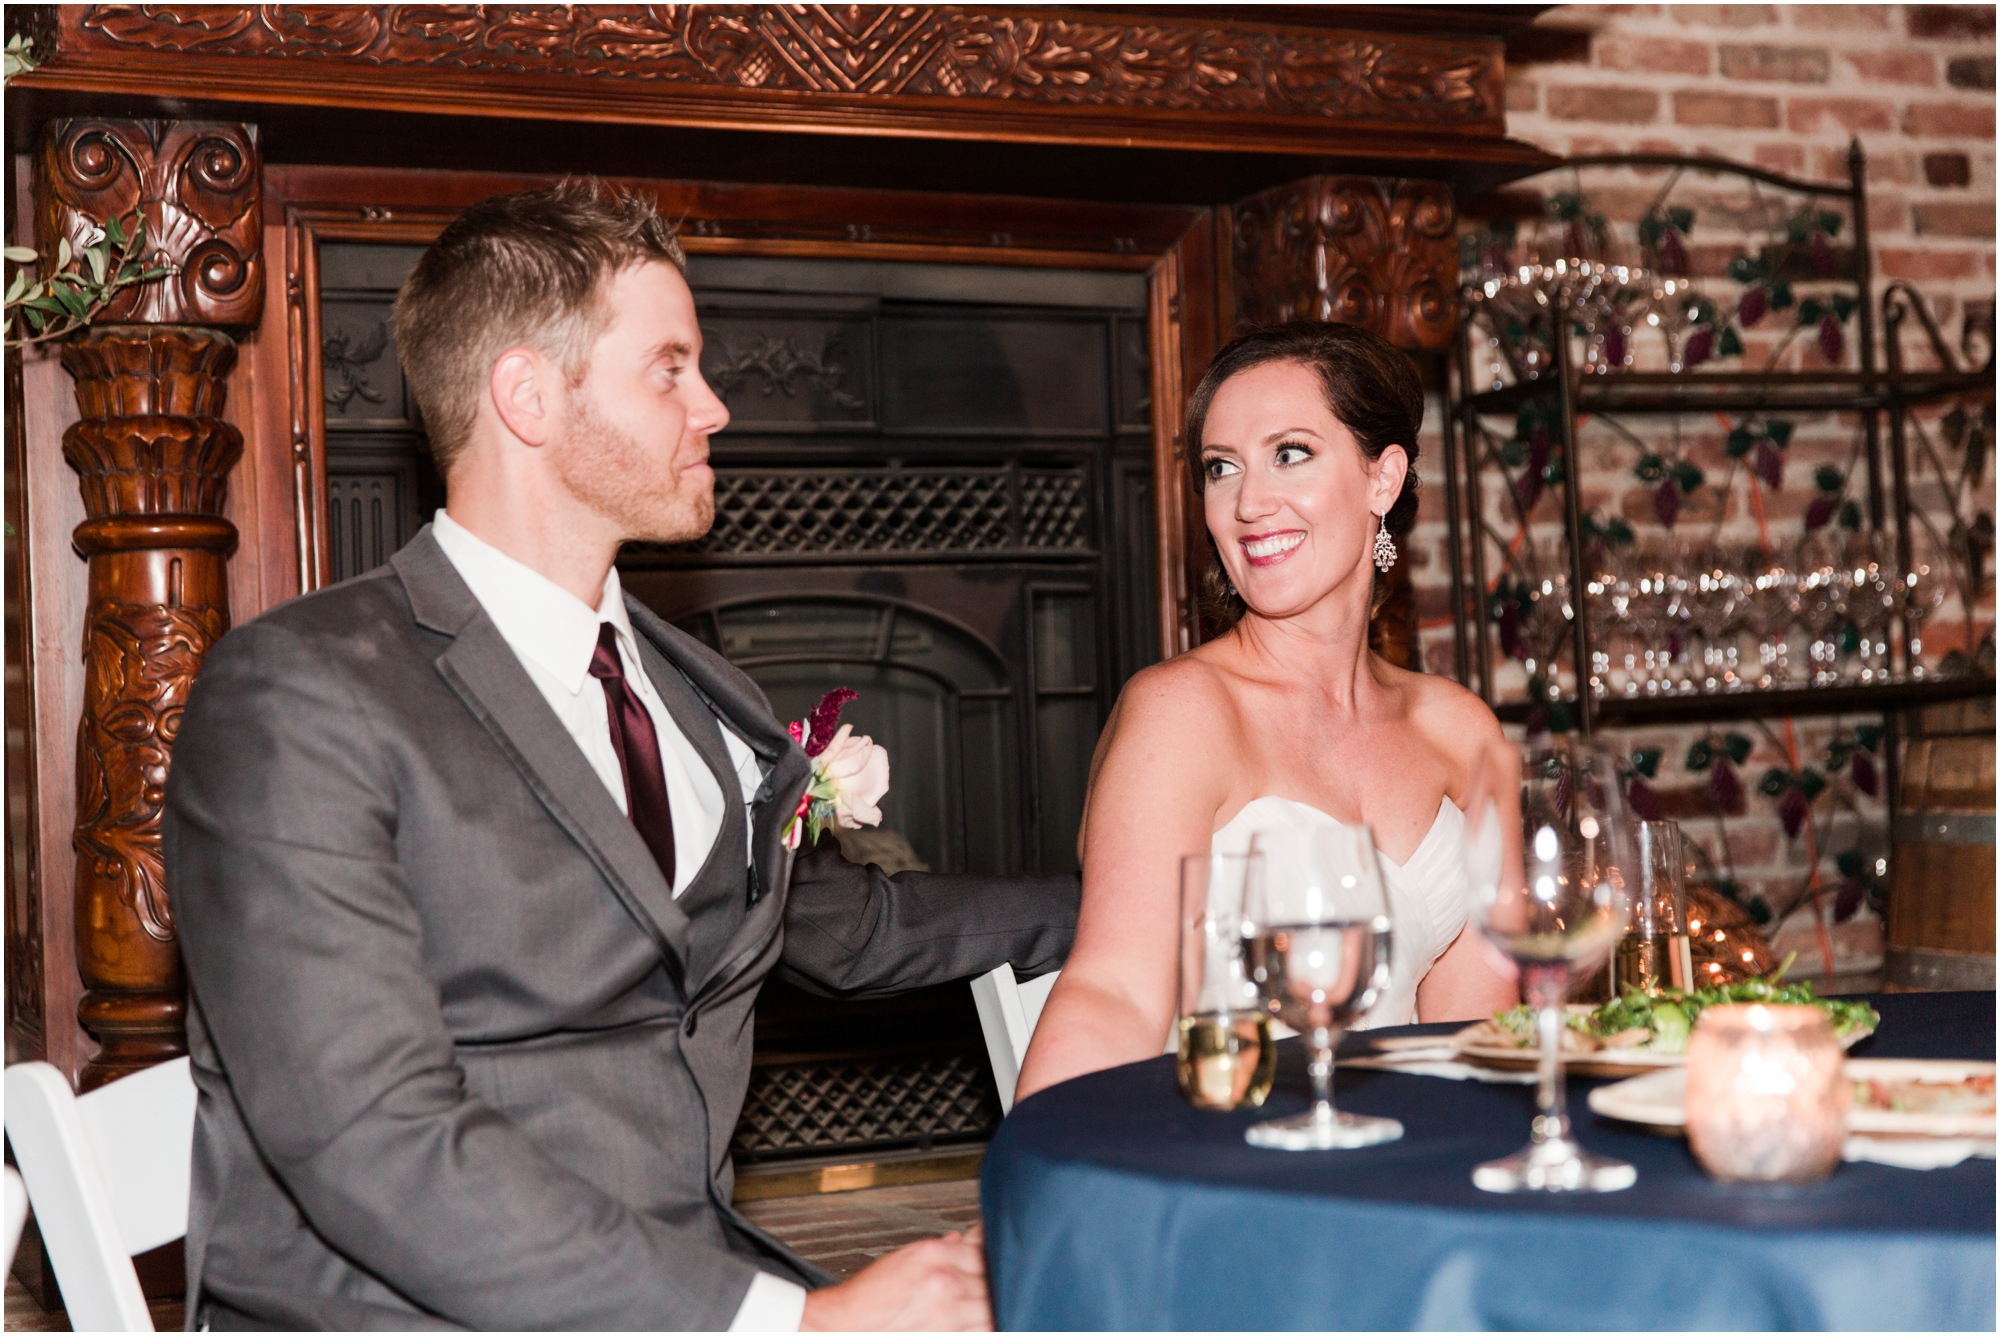 Picchetti Winery wedding pictures by Briana Calderon Photography_0500.jpg